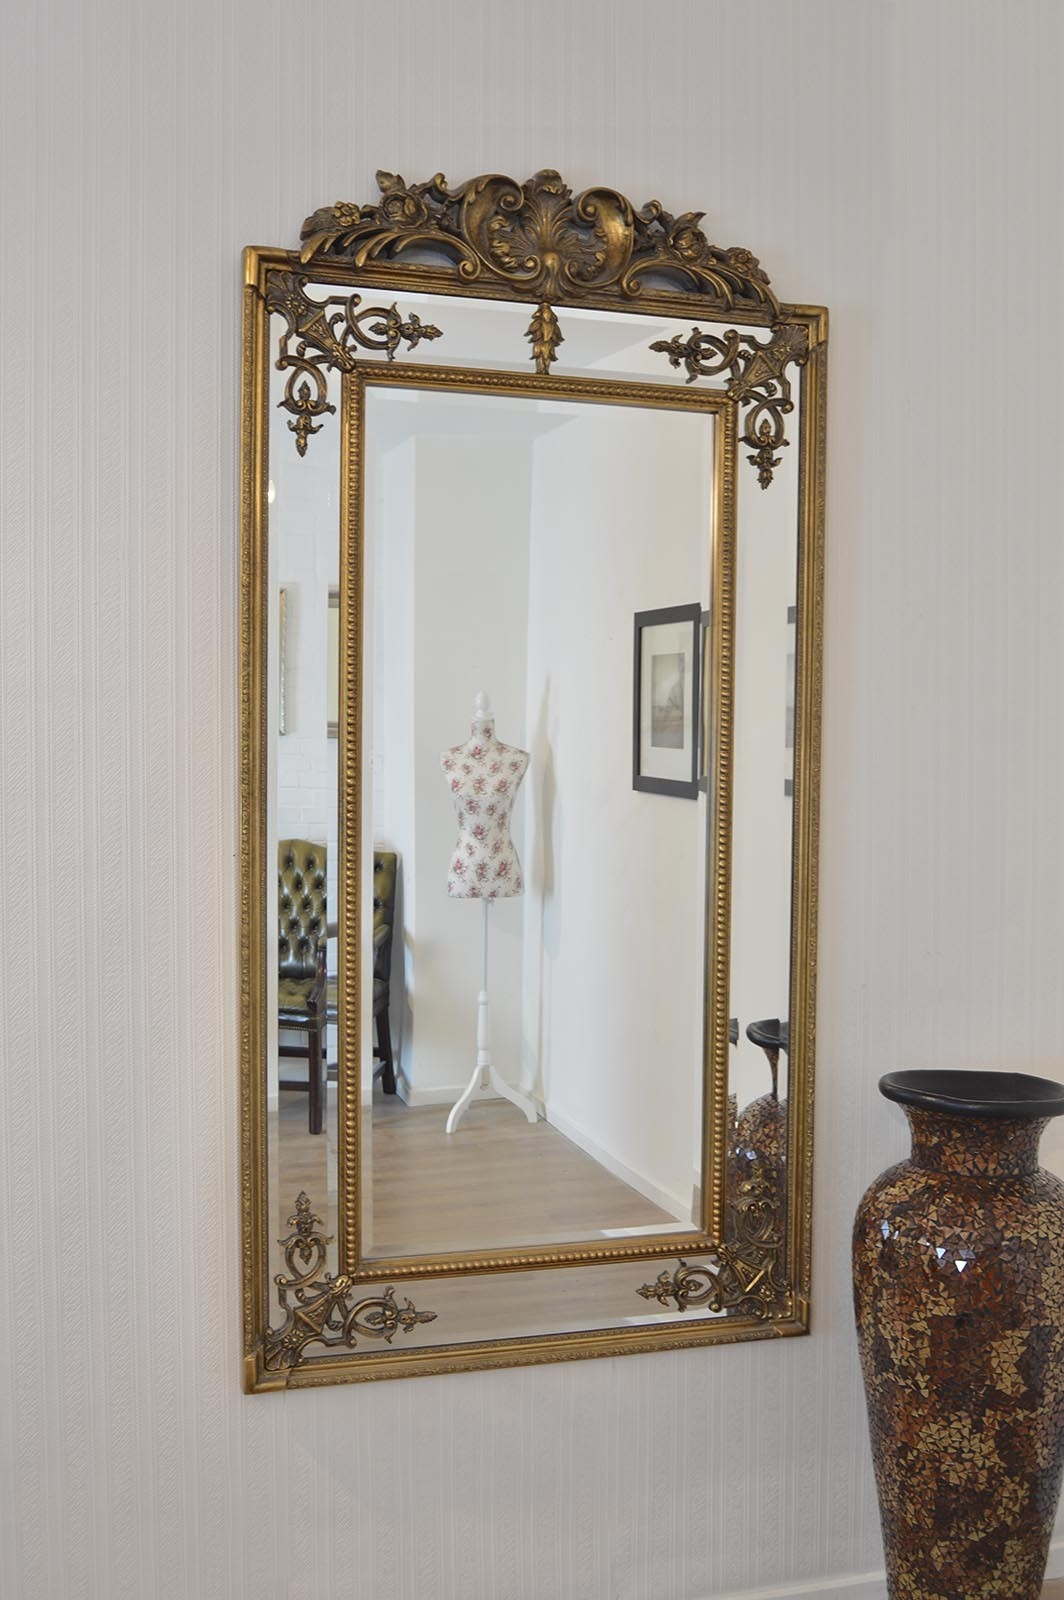 Large Gold Ornate Antique Design Wall Mounted Mirror New 6ft X 3ft Throughout Large Gold Ornate Mirror (Image 9 of 15)